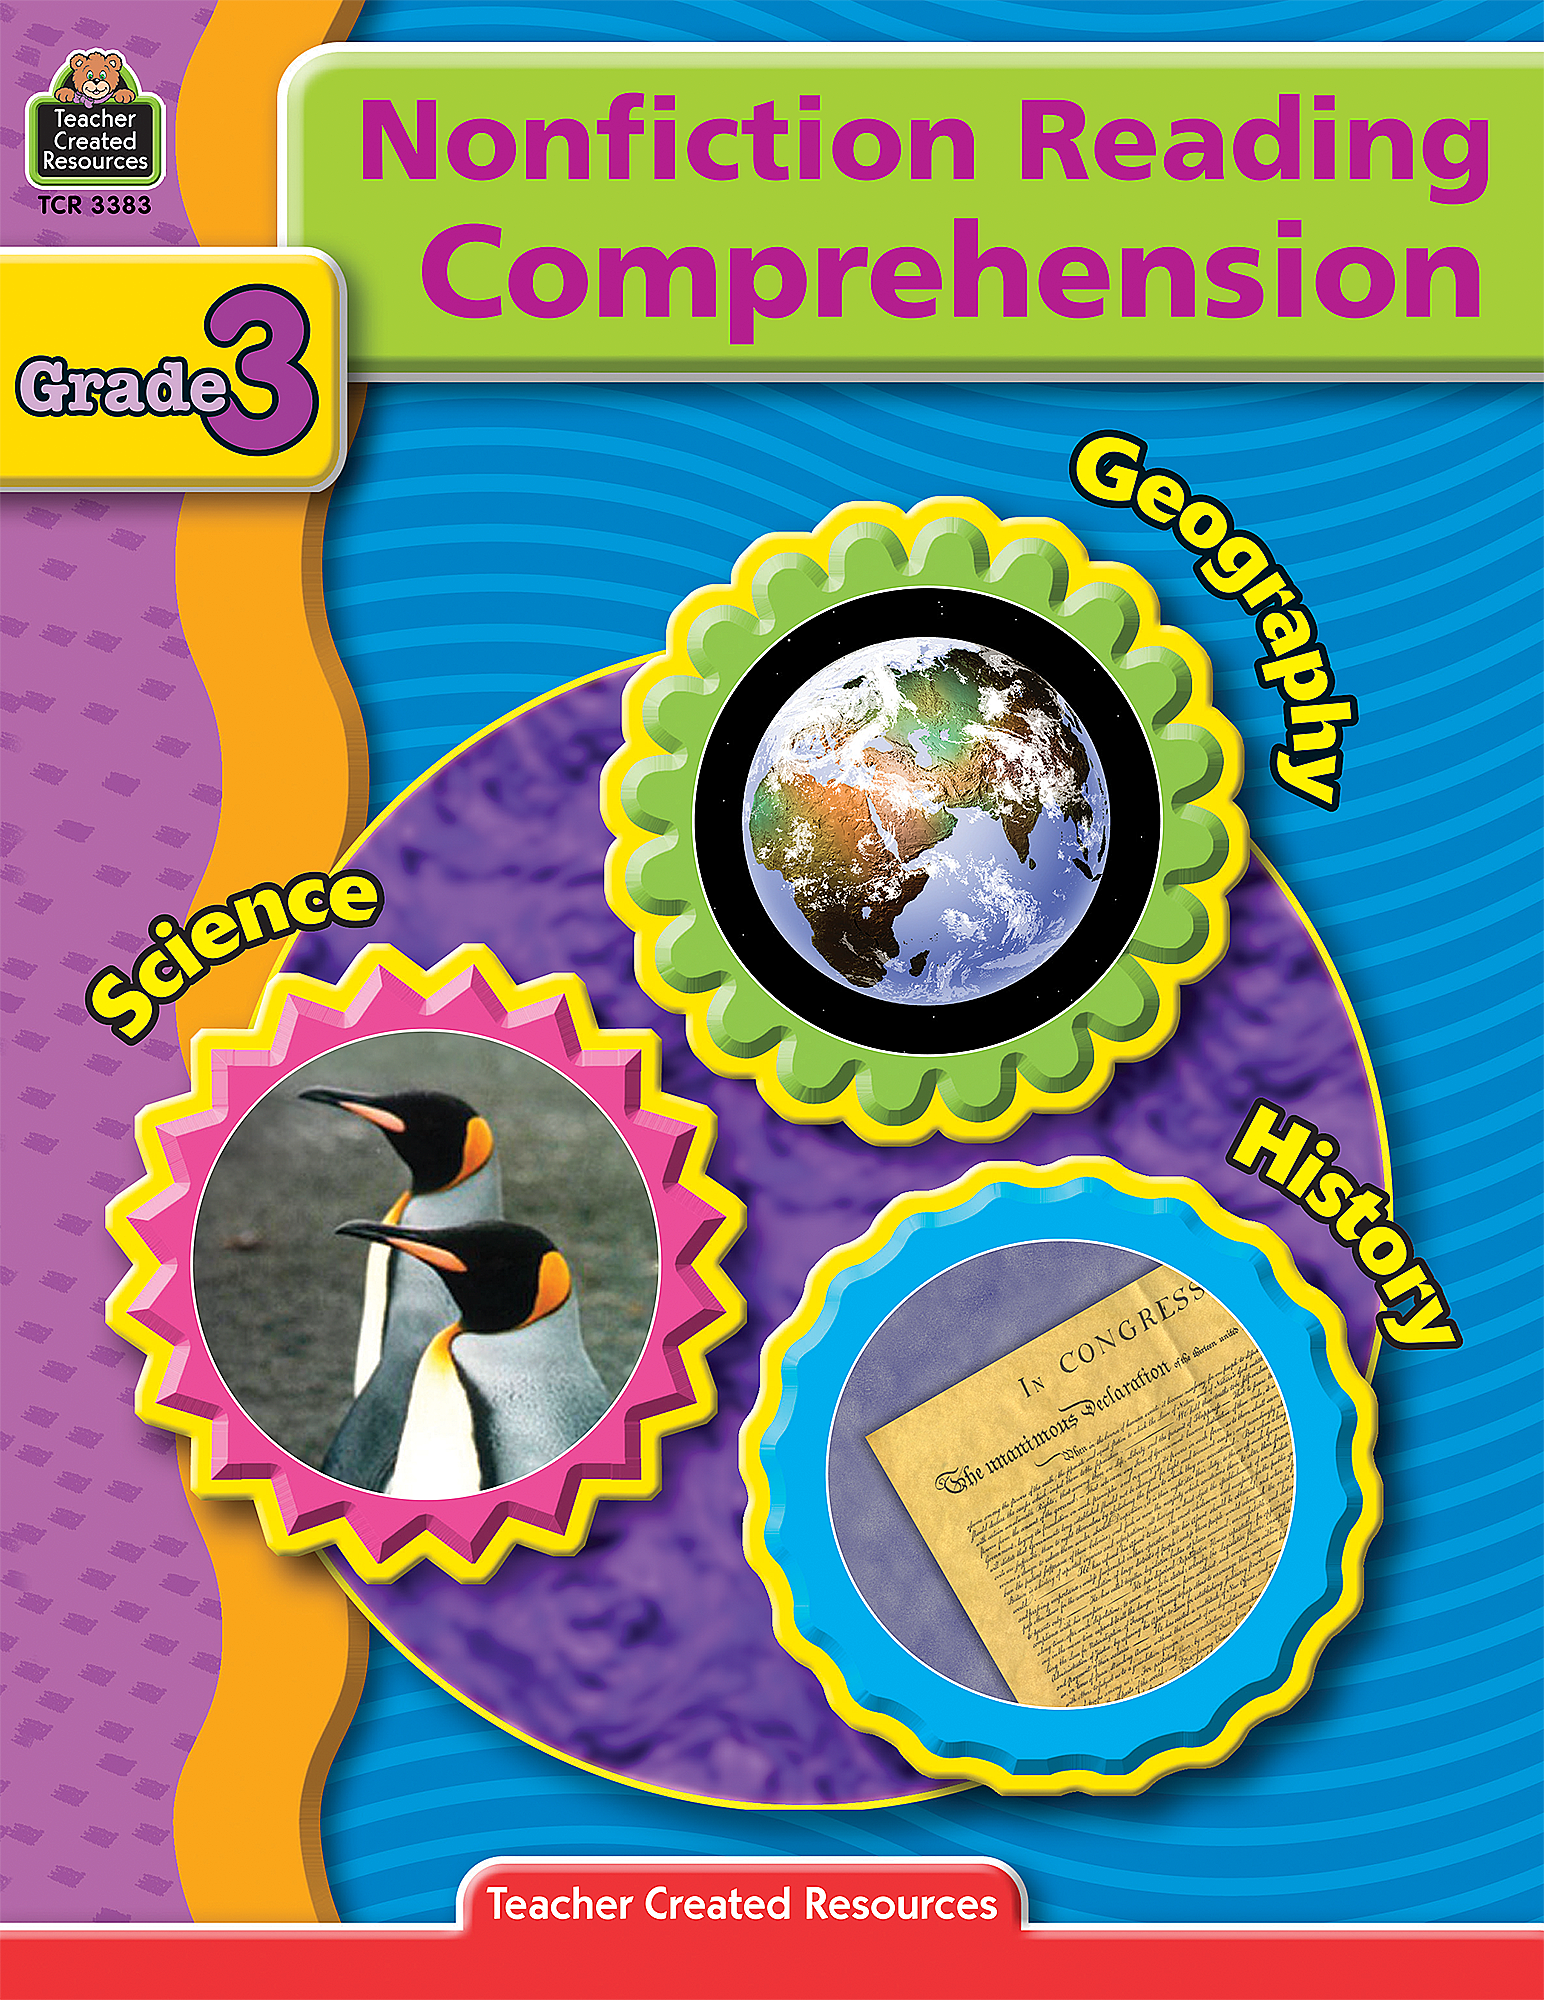 Nonfiction Reading Comprehension Grade 3 Tcr3383